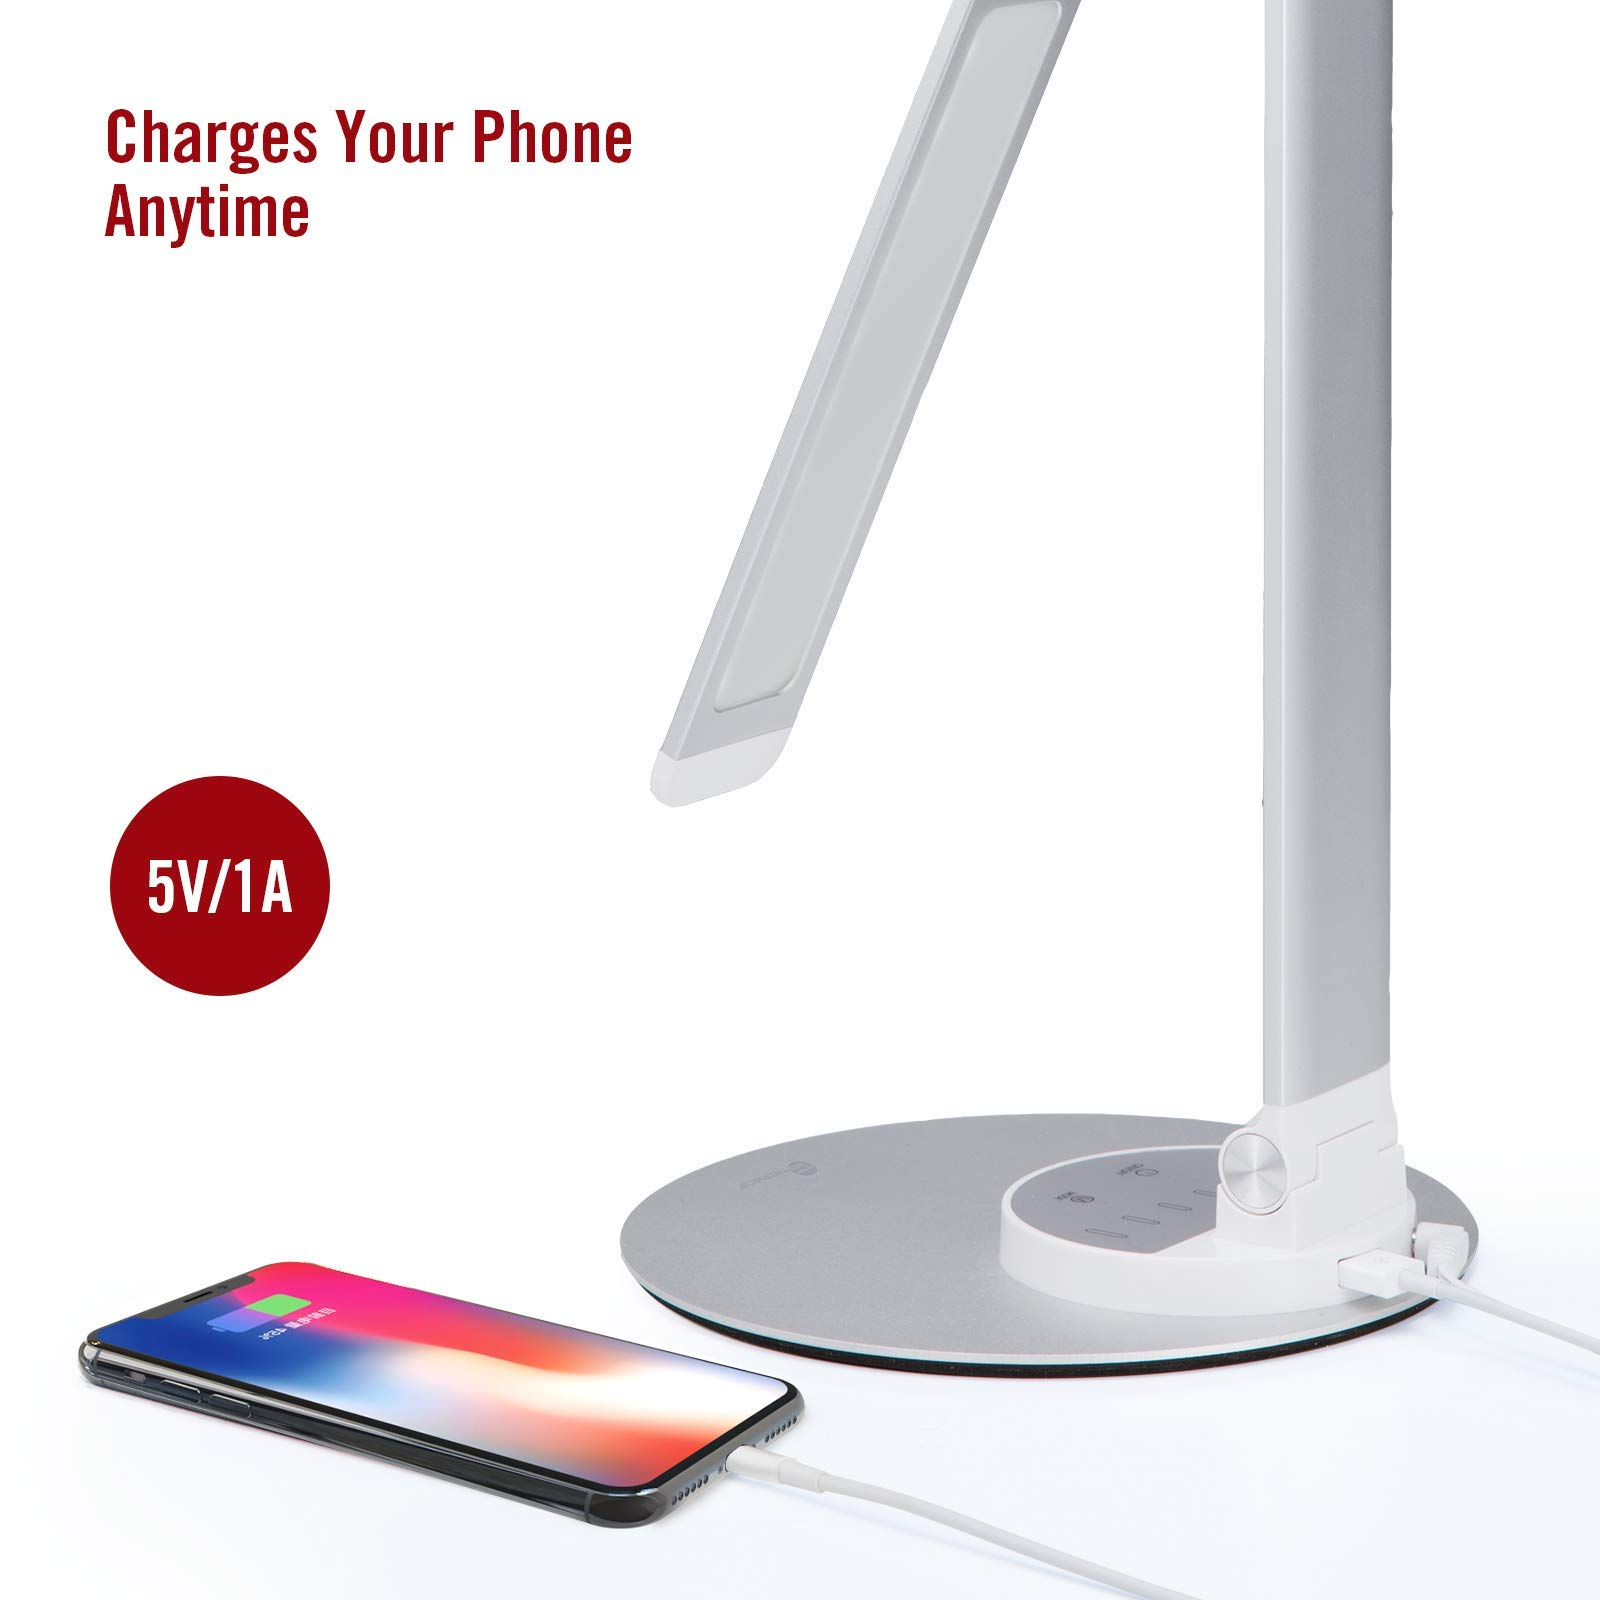 TaoTronics Aluminum Alloy Dimmable Dimmable LED Desk Lamp with USB Charging Port, Table Lamp for Office Lighting, 3 Color Modes & 6 Brightness Levels, Silver, Philips Enabled Licensing Program by TaoTronics (Image #4)